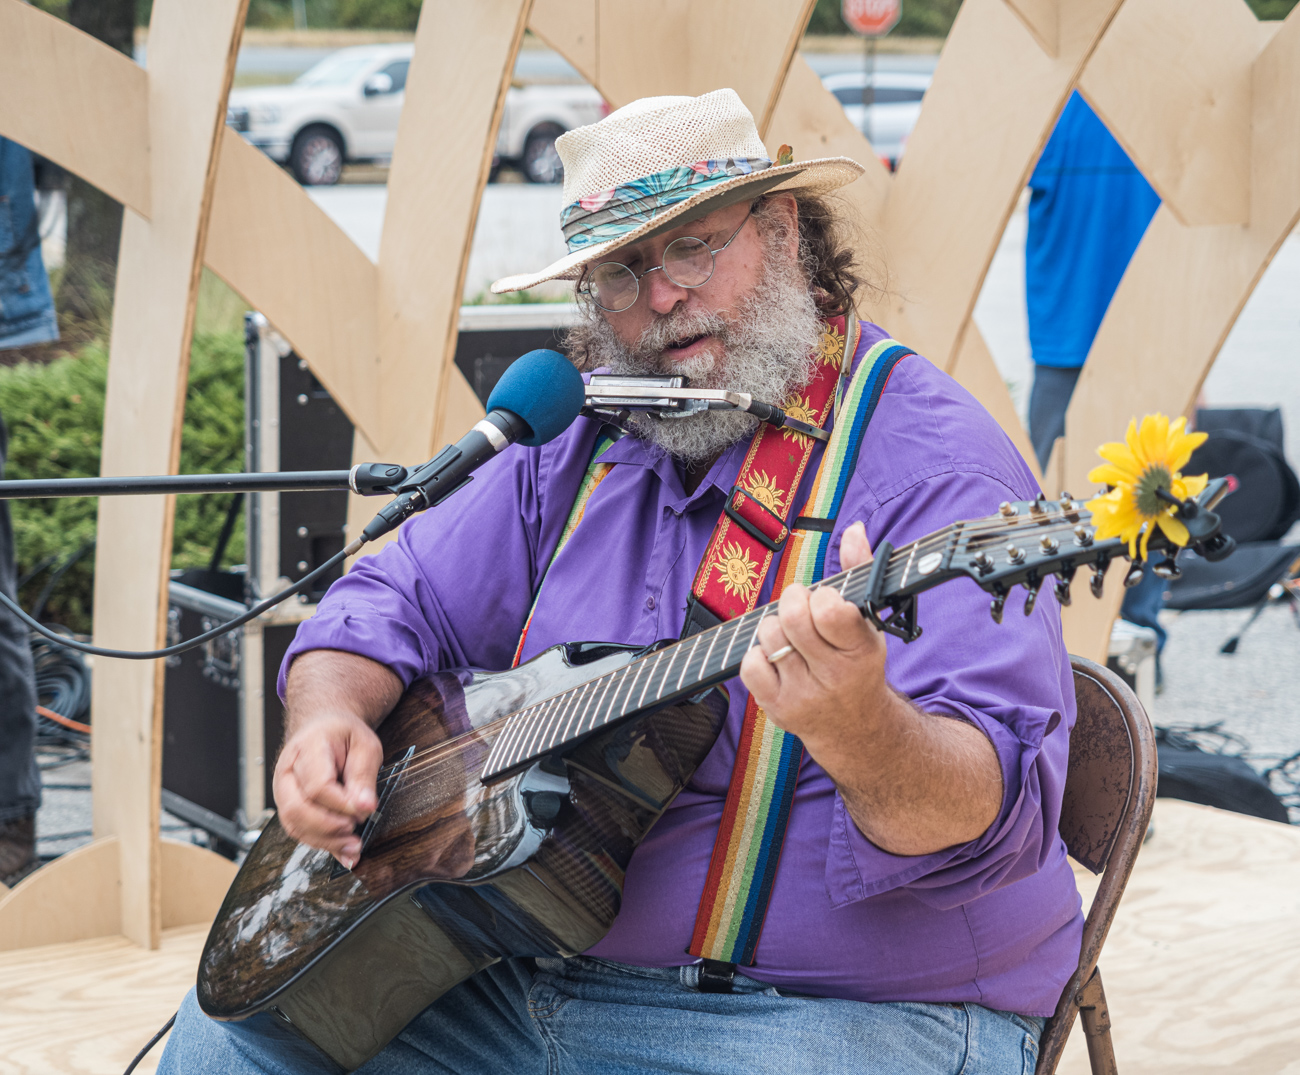 Musician on stage at Burtonsville Placemaking Festival